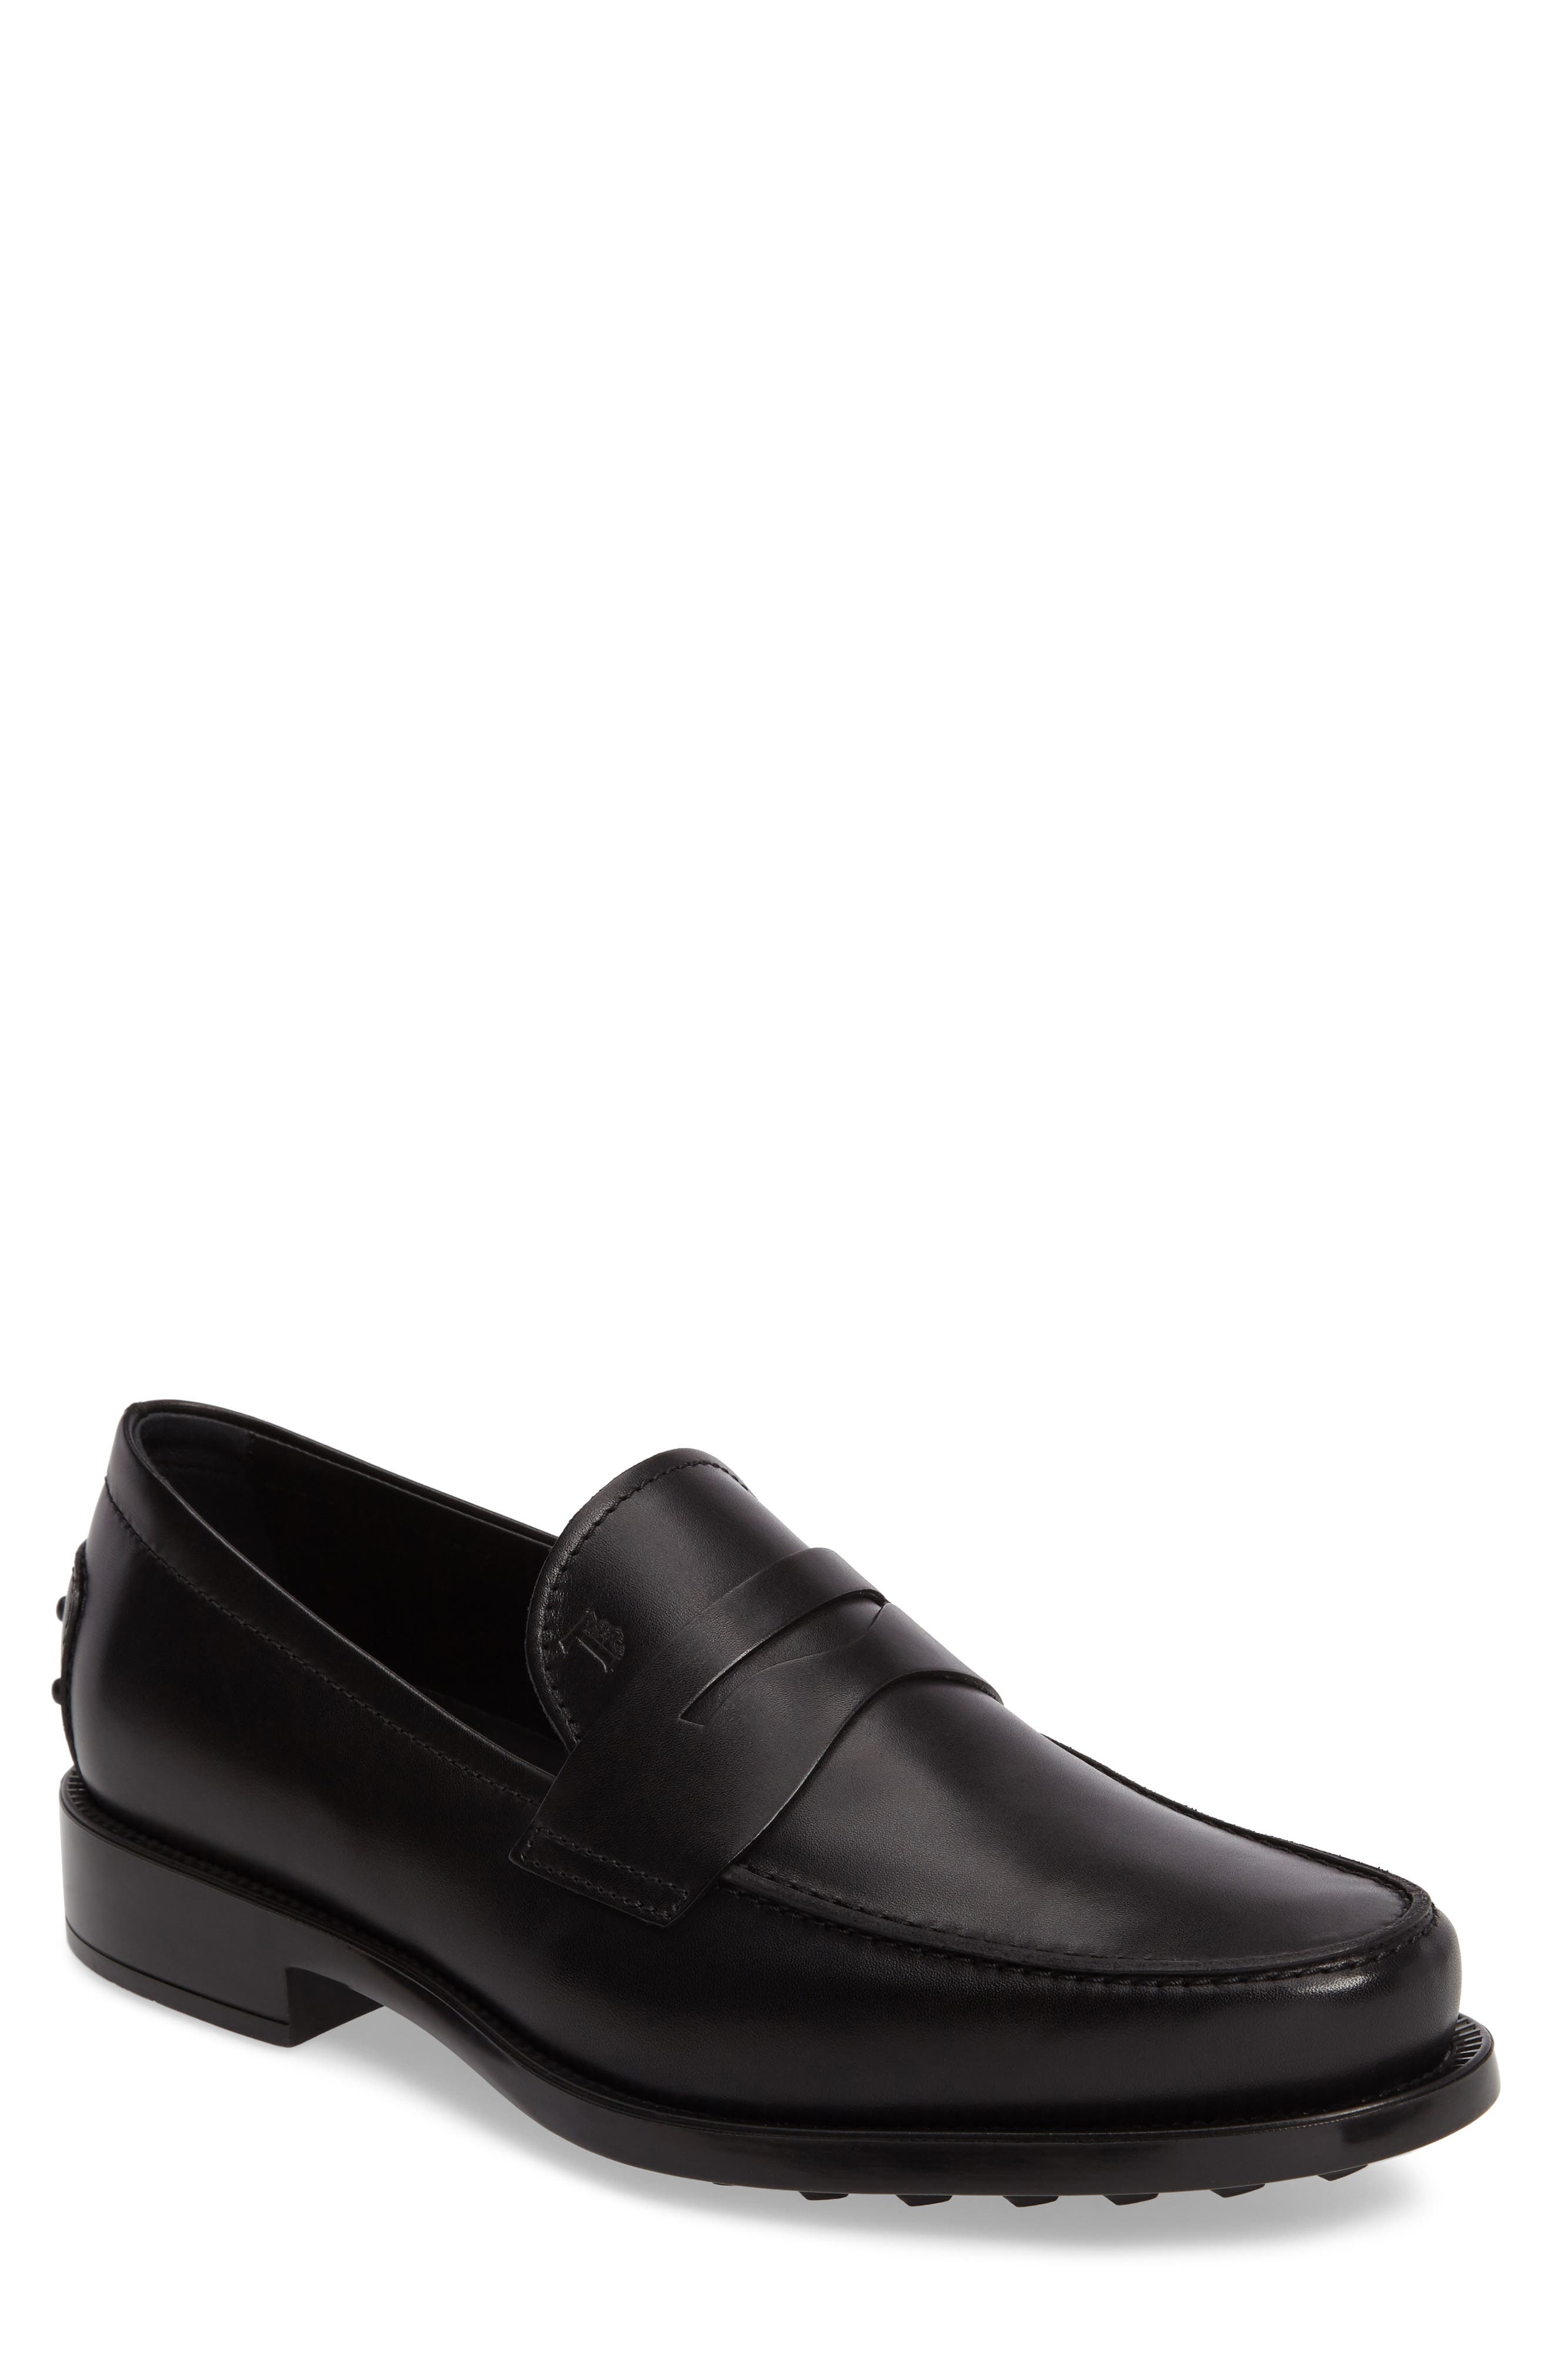 'Boston' Penny Loafer,                             Main thumbnail 1, color,                             Black Leather